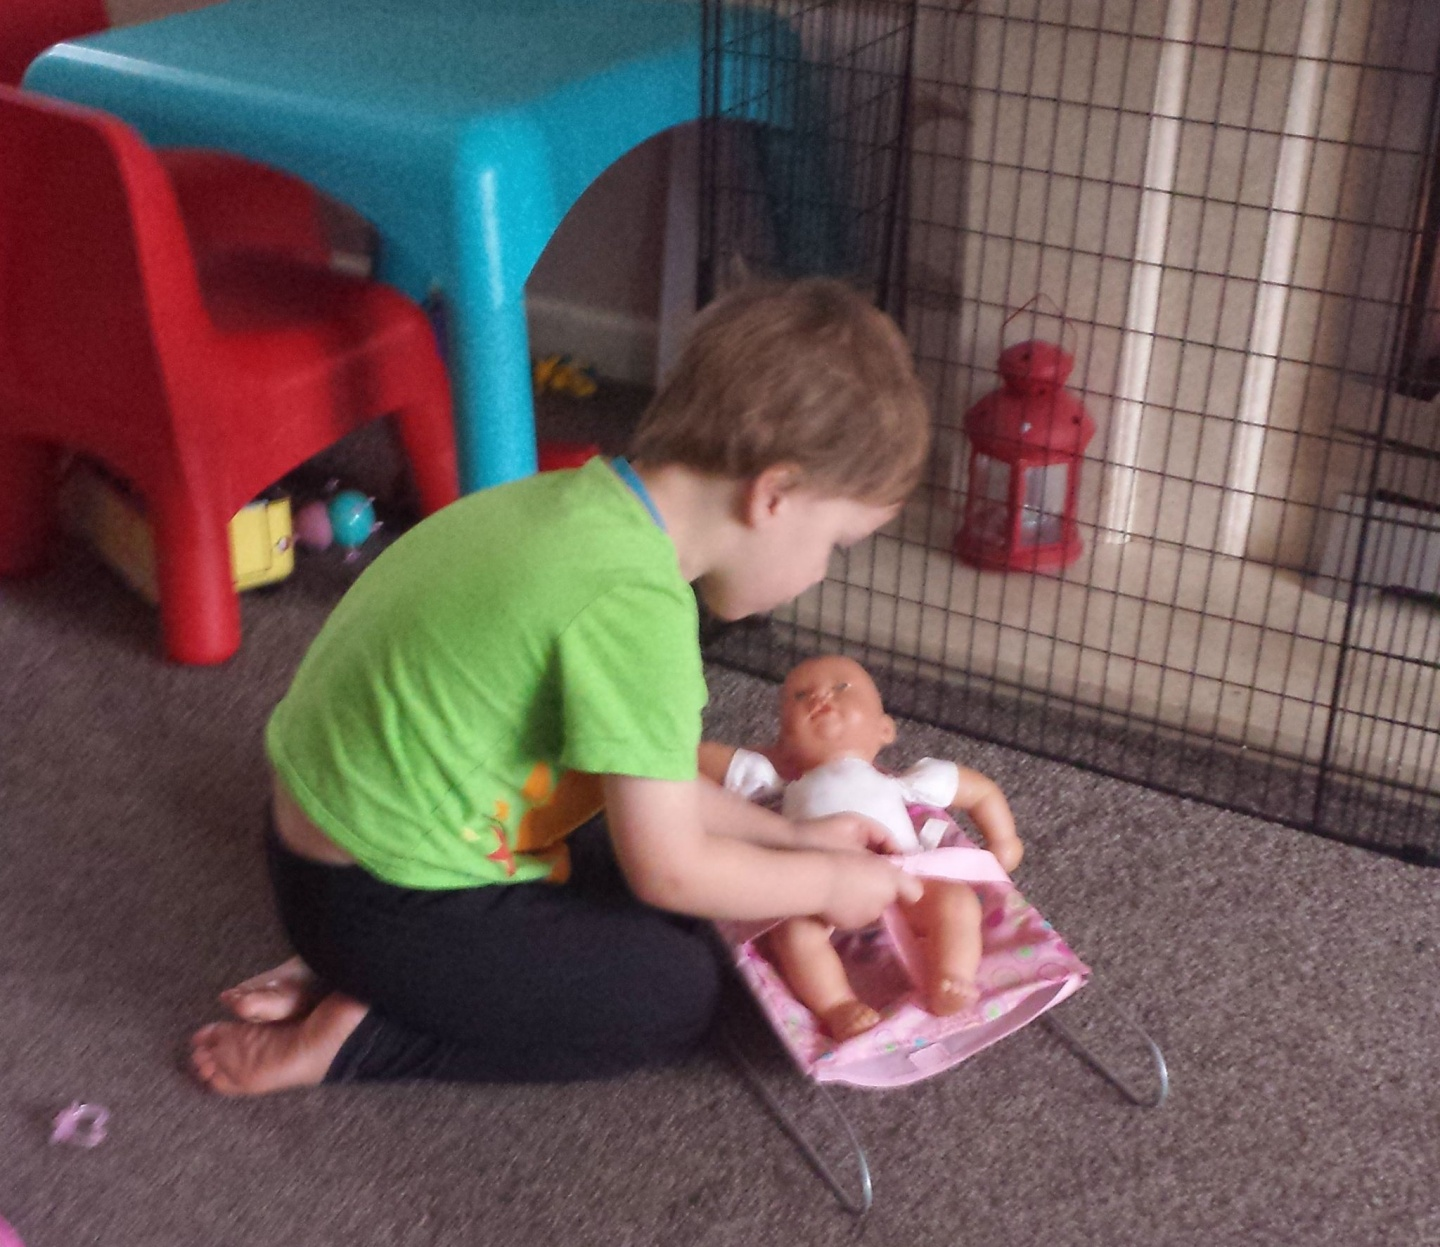 mckenzie playing with baby doll in preparation for a new sibling